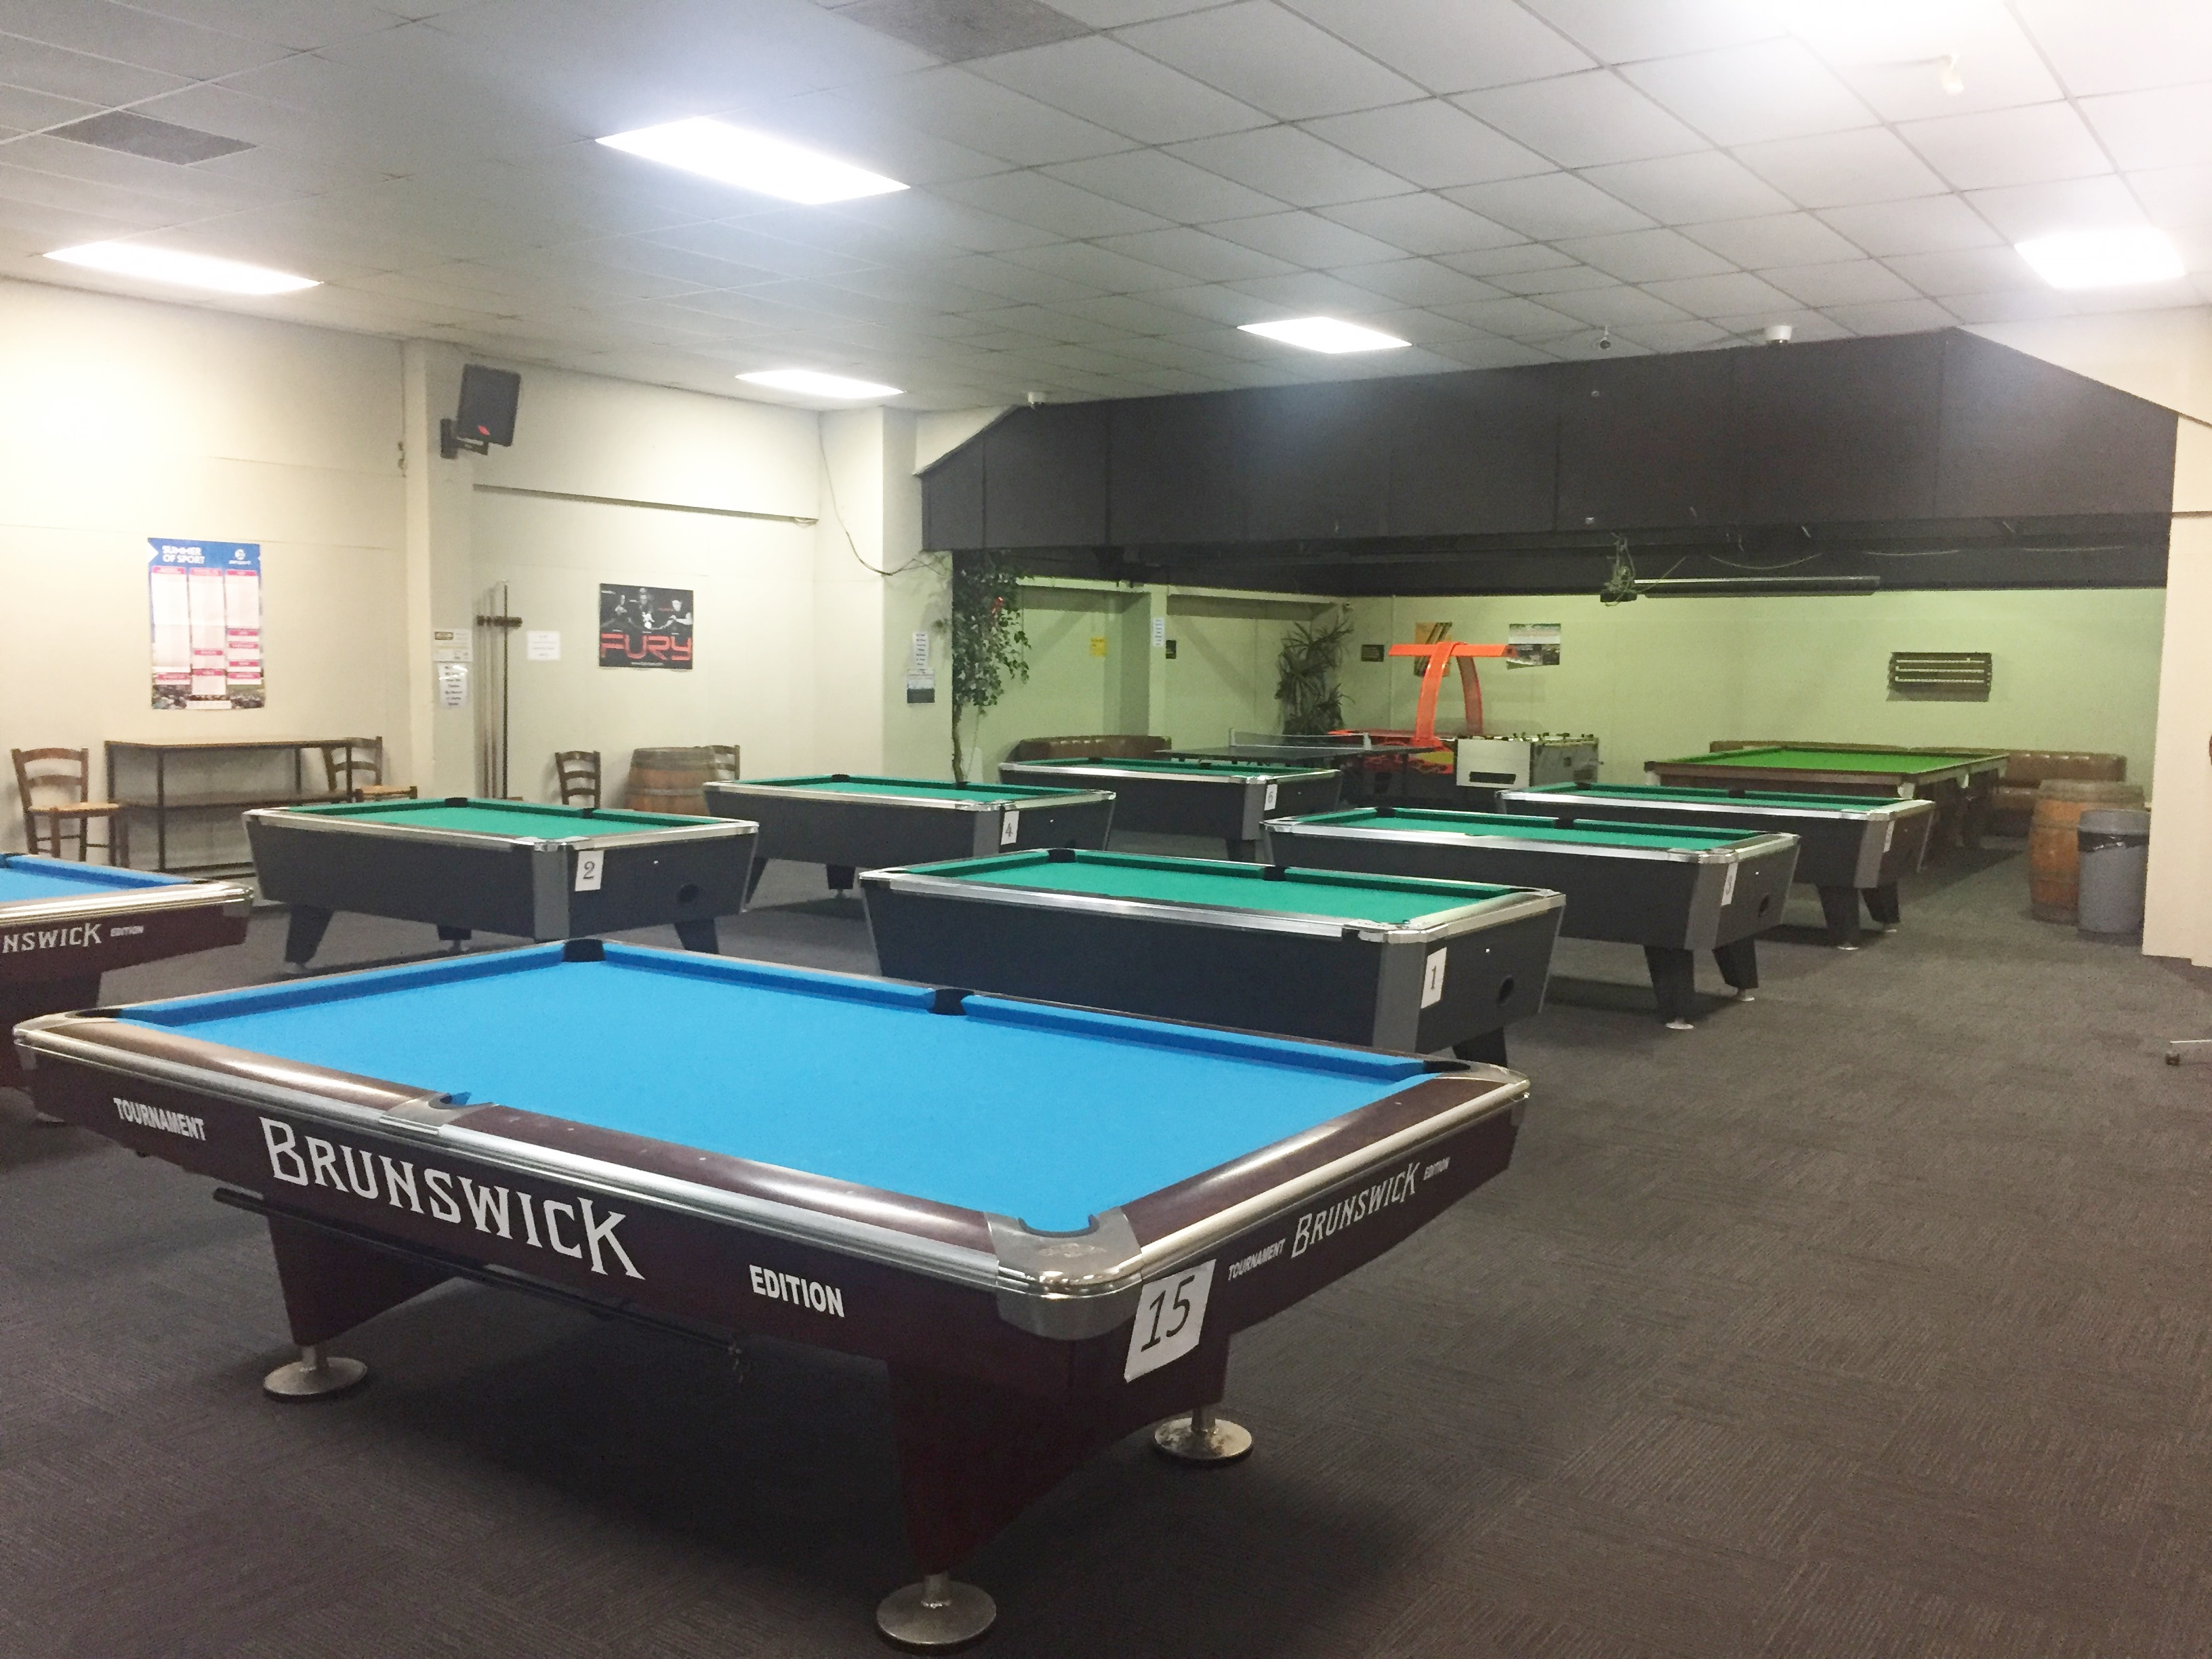 Pukekohe Masse - Masse pool table